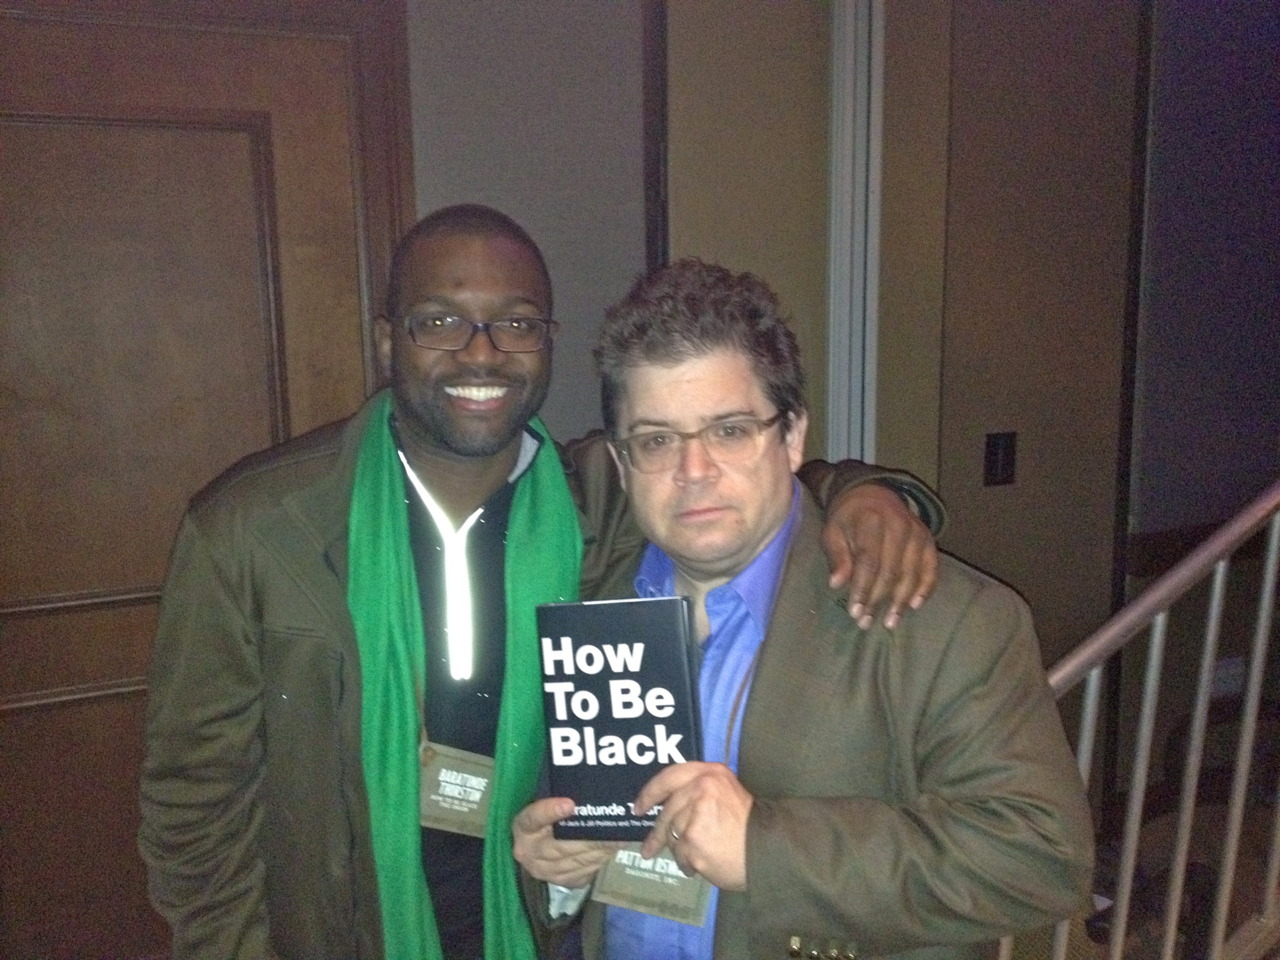 Baratunde and Patton Oswalt (who blurbed the book brilliantly)!